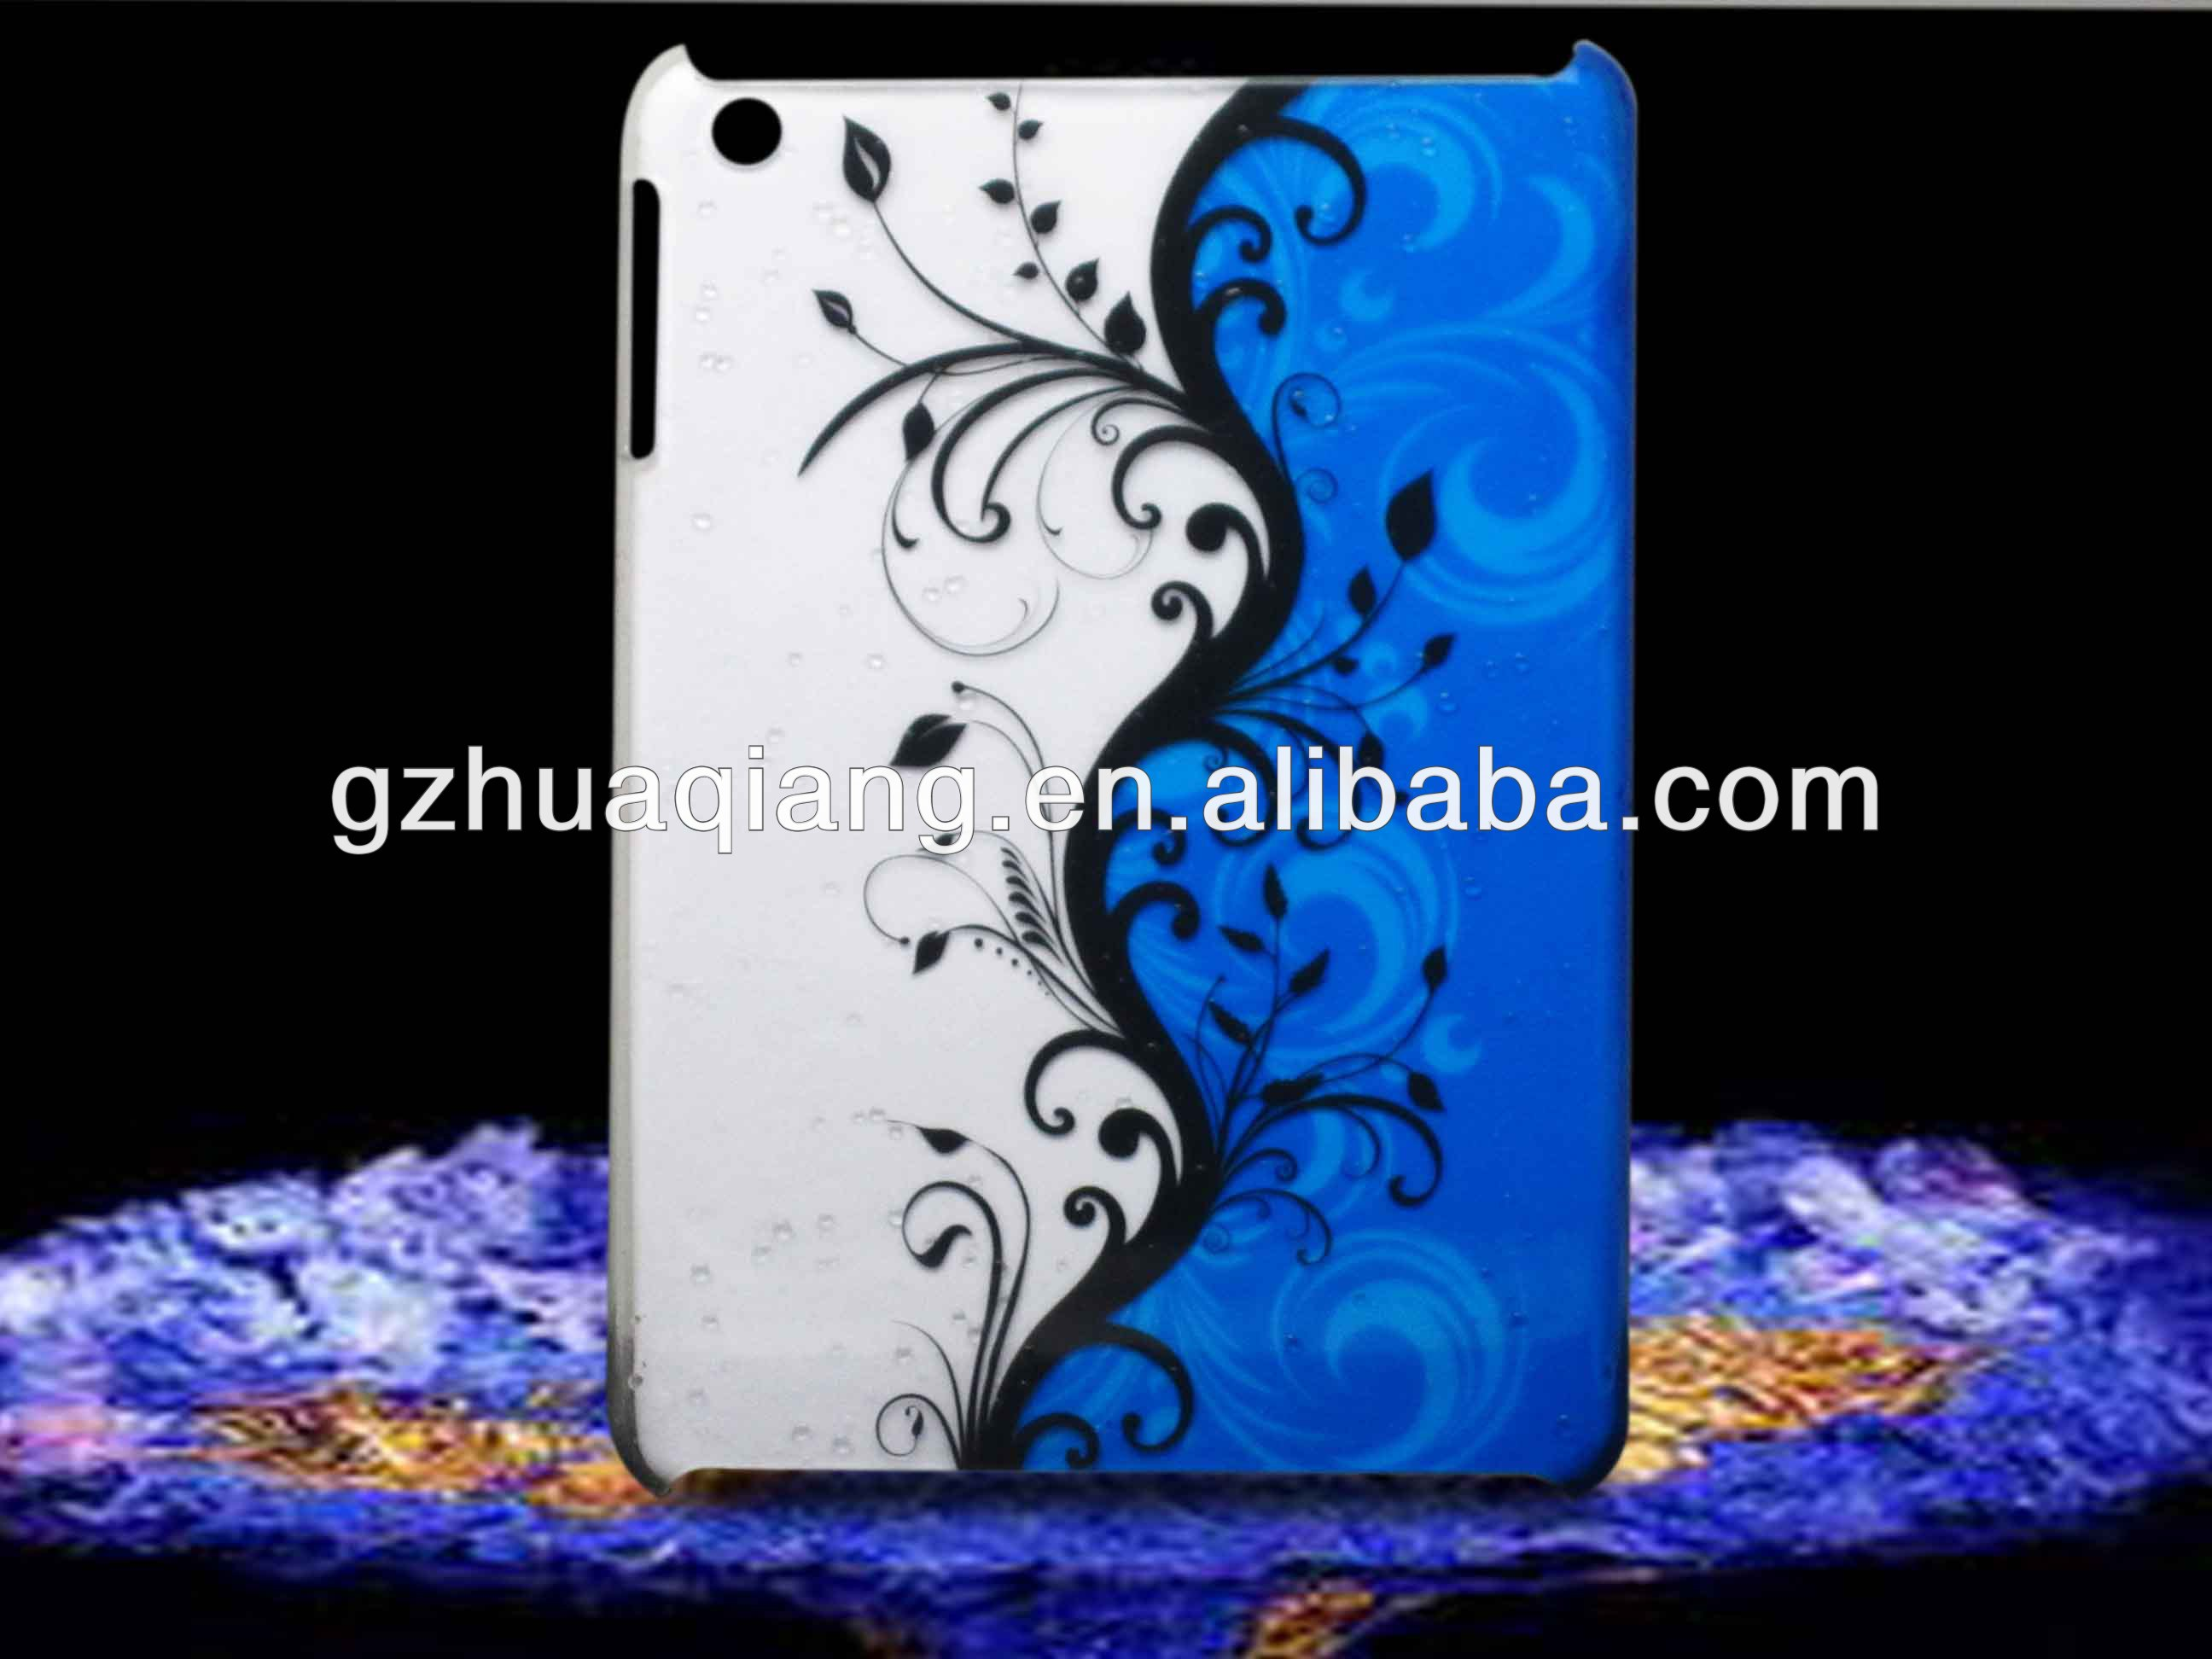 Newest Luxury design case for ipad mini,high quality PC case for ipad,drop in water stickers following